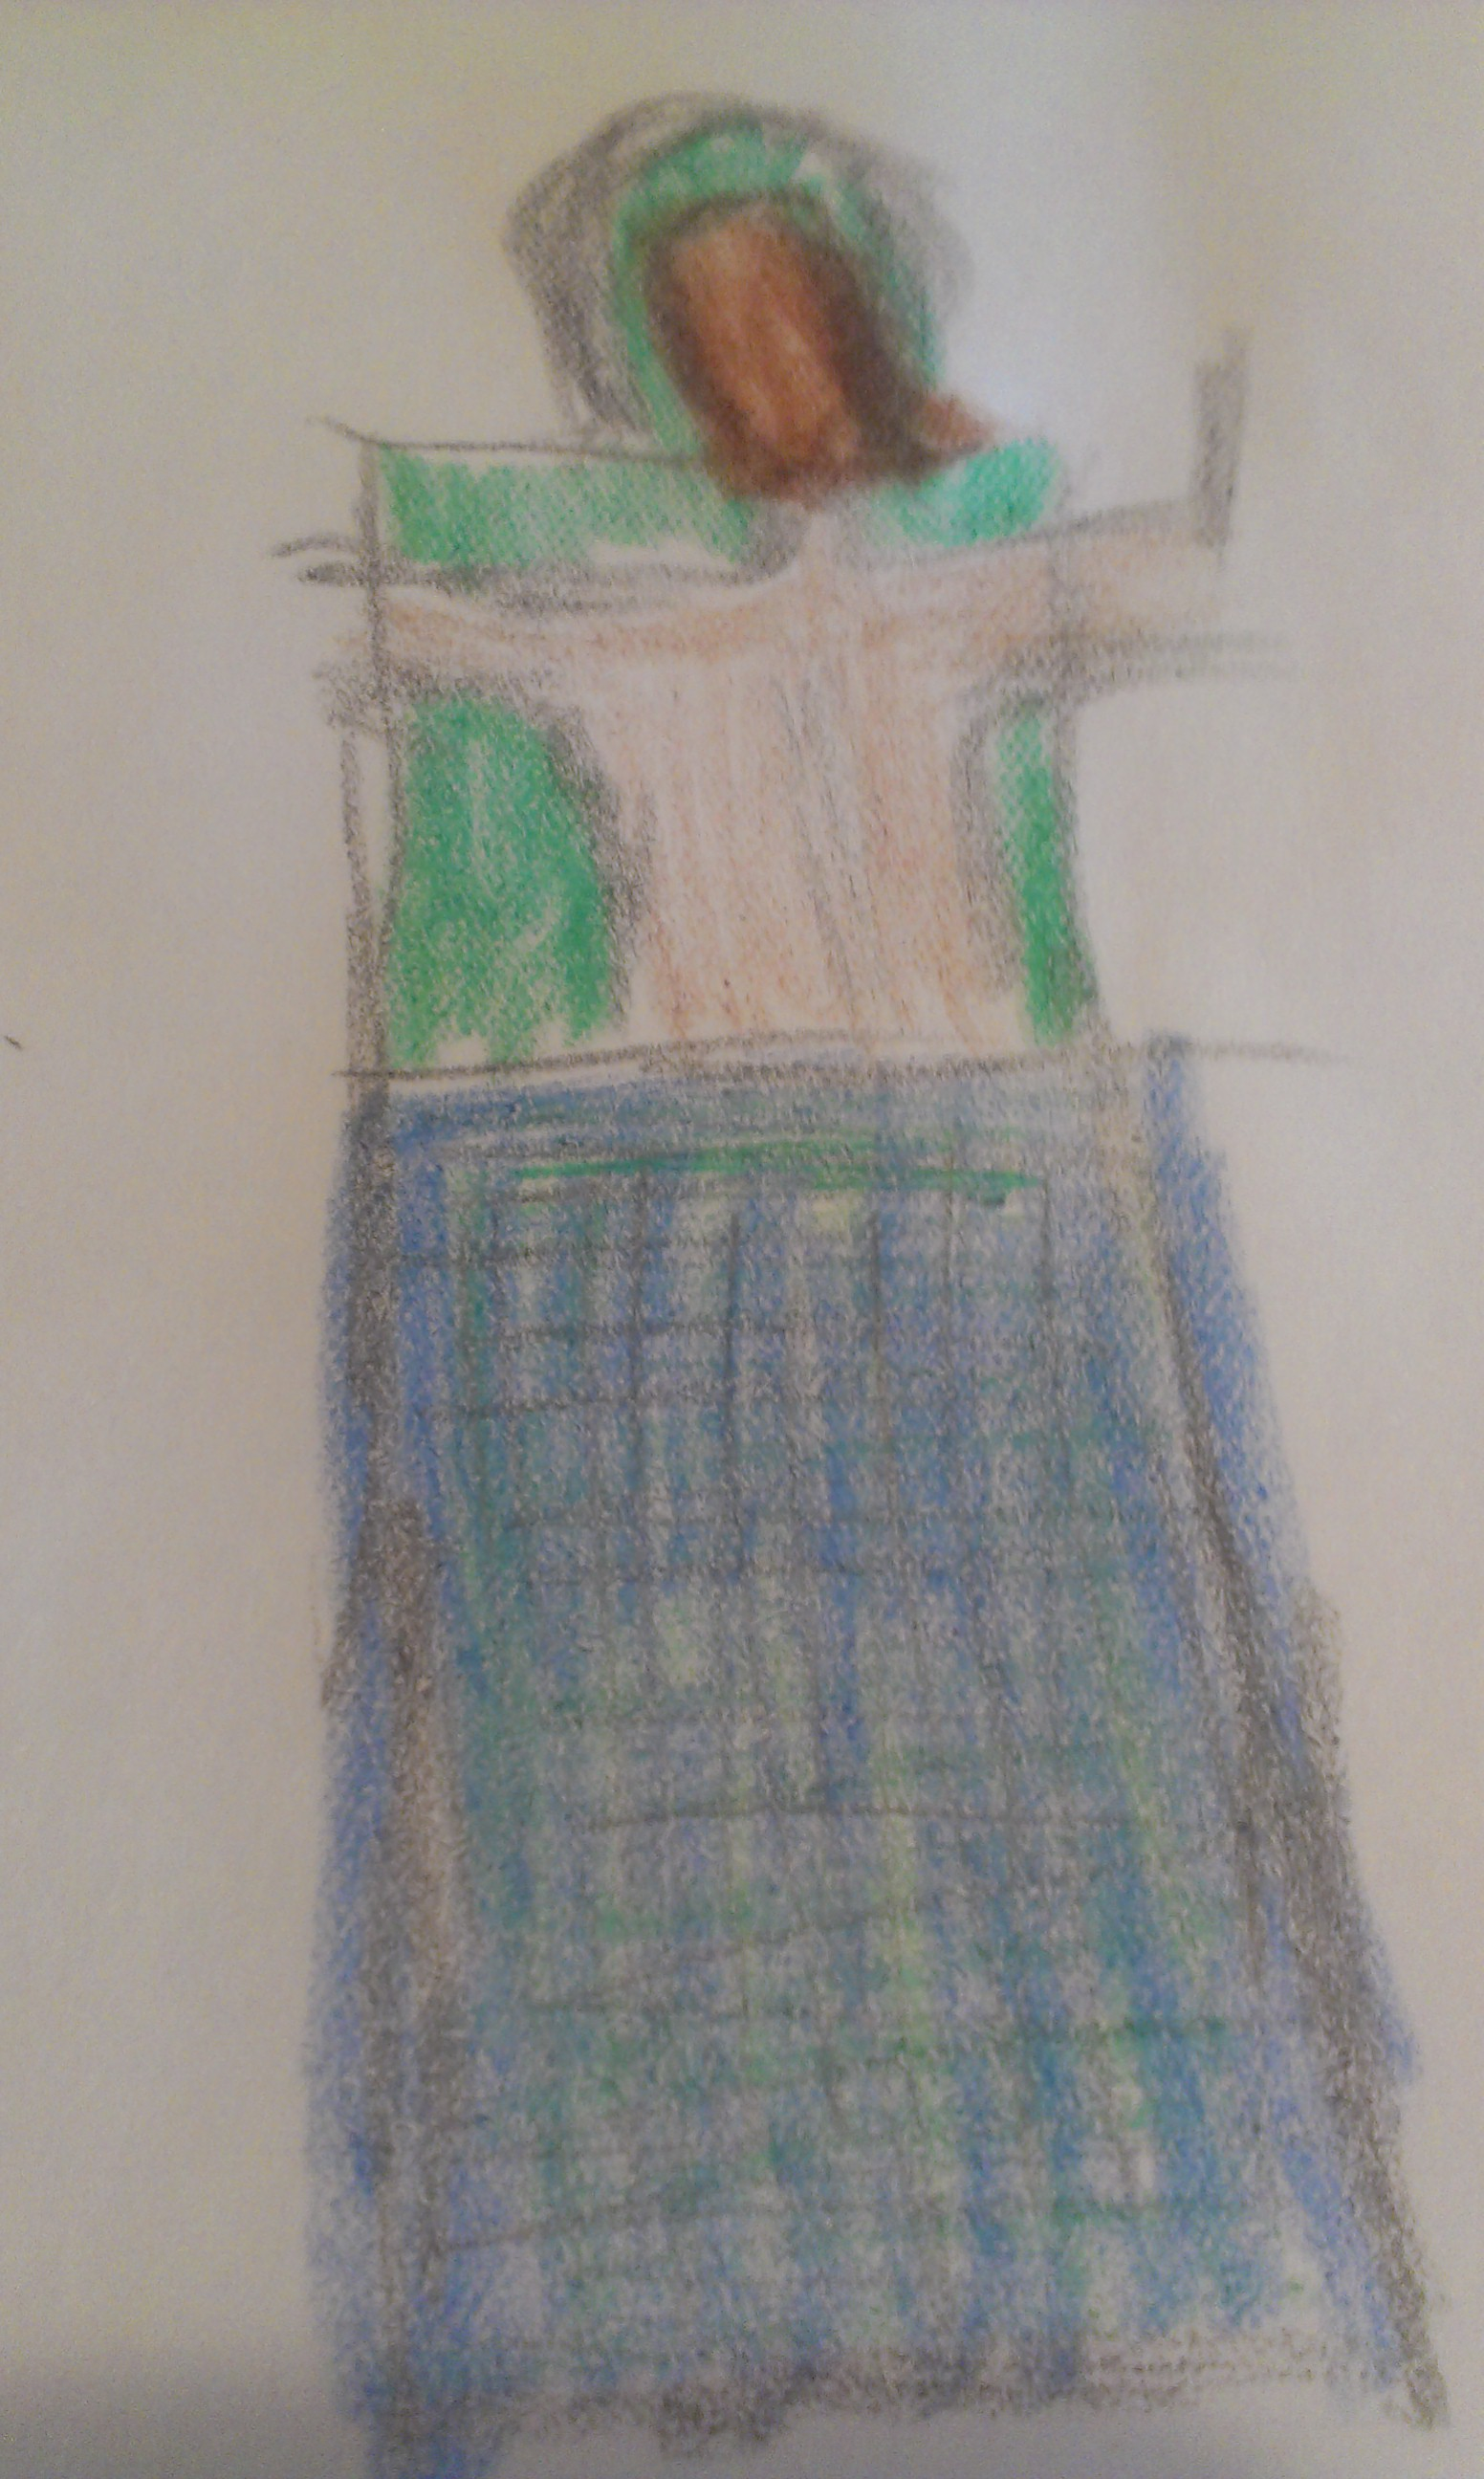 this is what back draping looks like drawn in crayon, excluding forearms and hands.